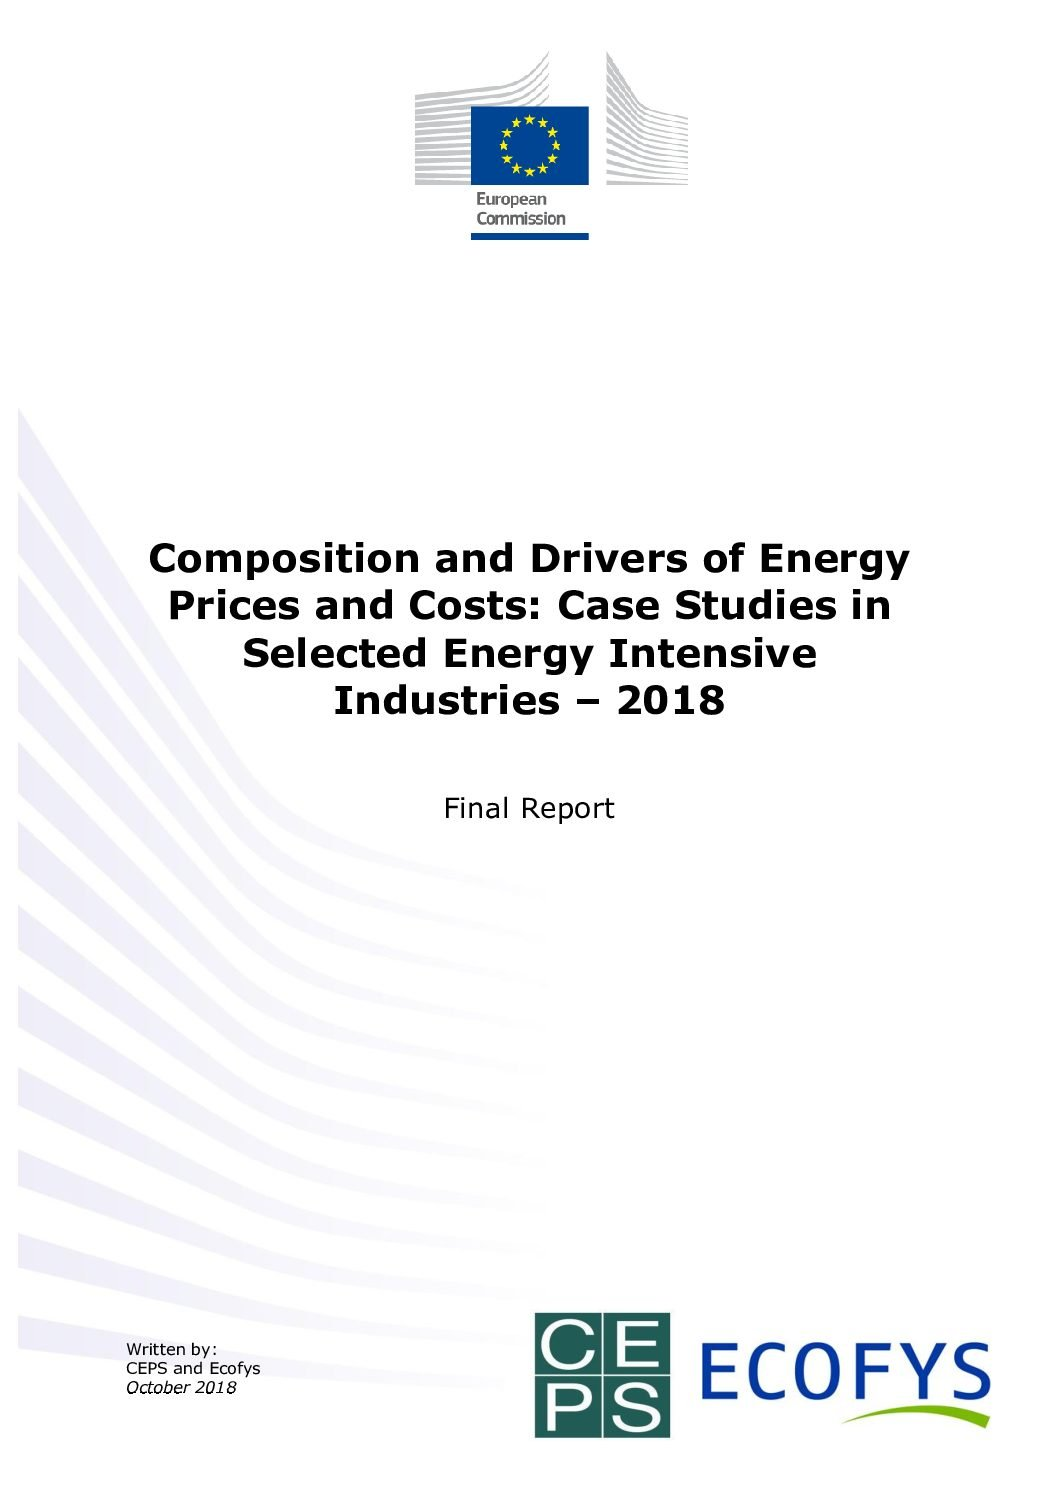 Composition and Drivers of Energy Prices and Costs: Case Studies in Selected Energy Intensive Industries – 2018